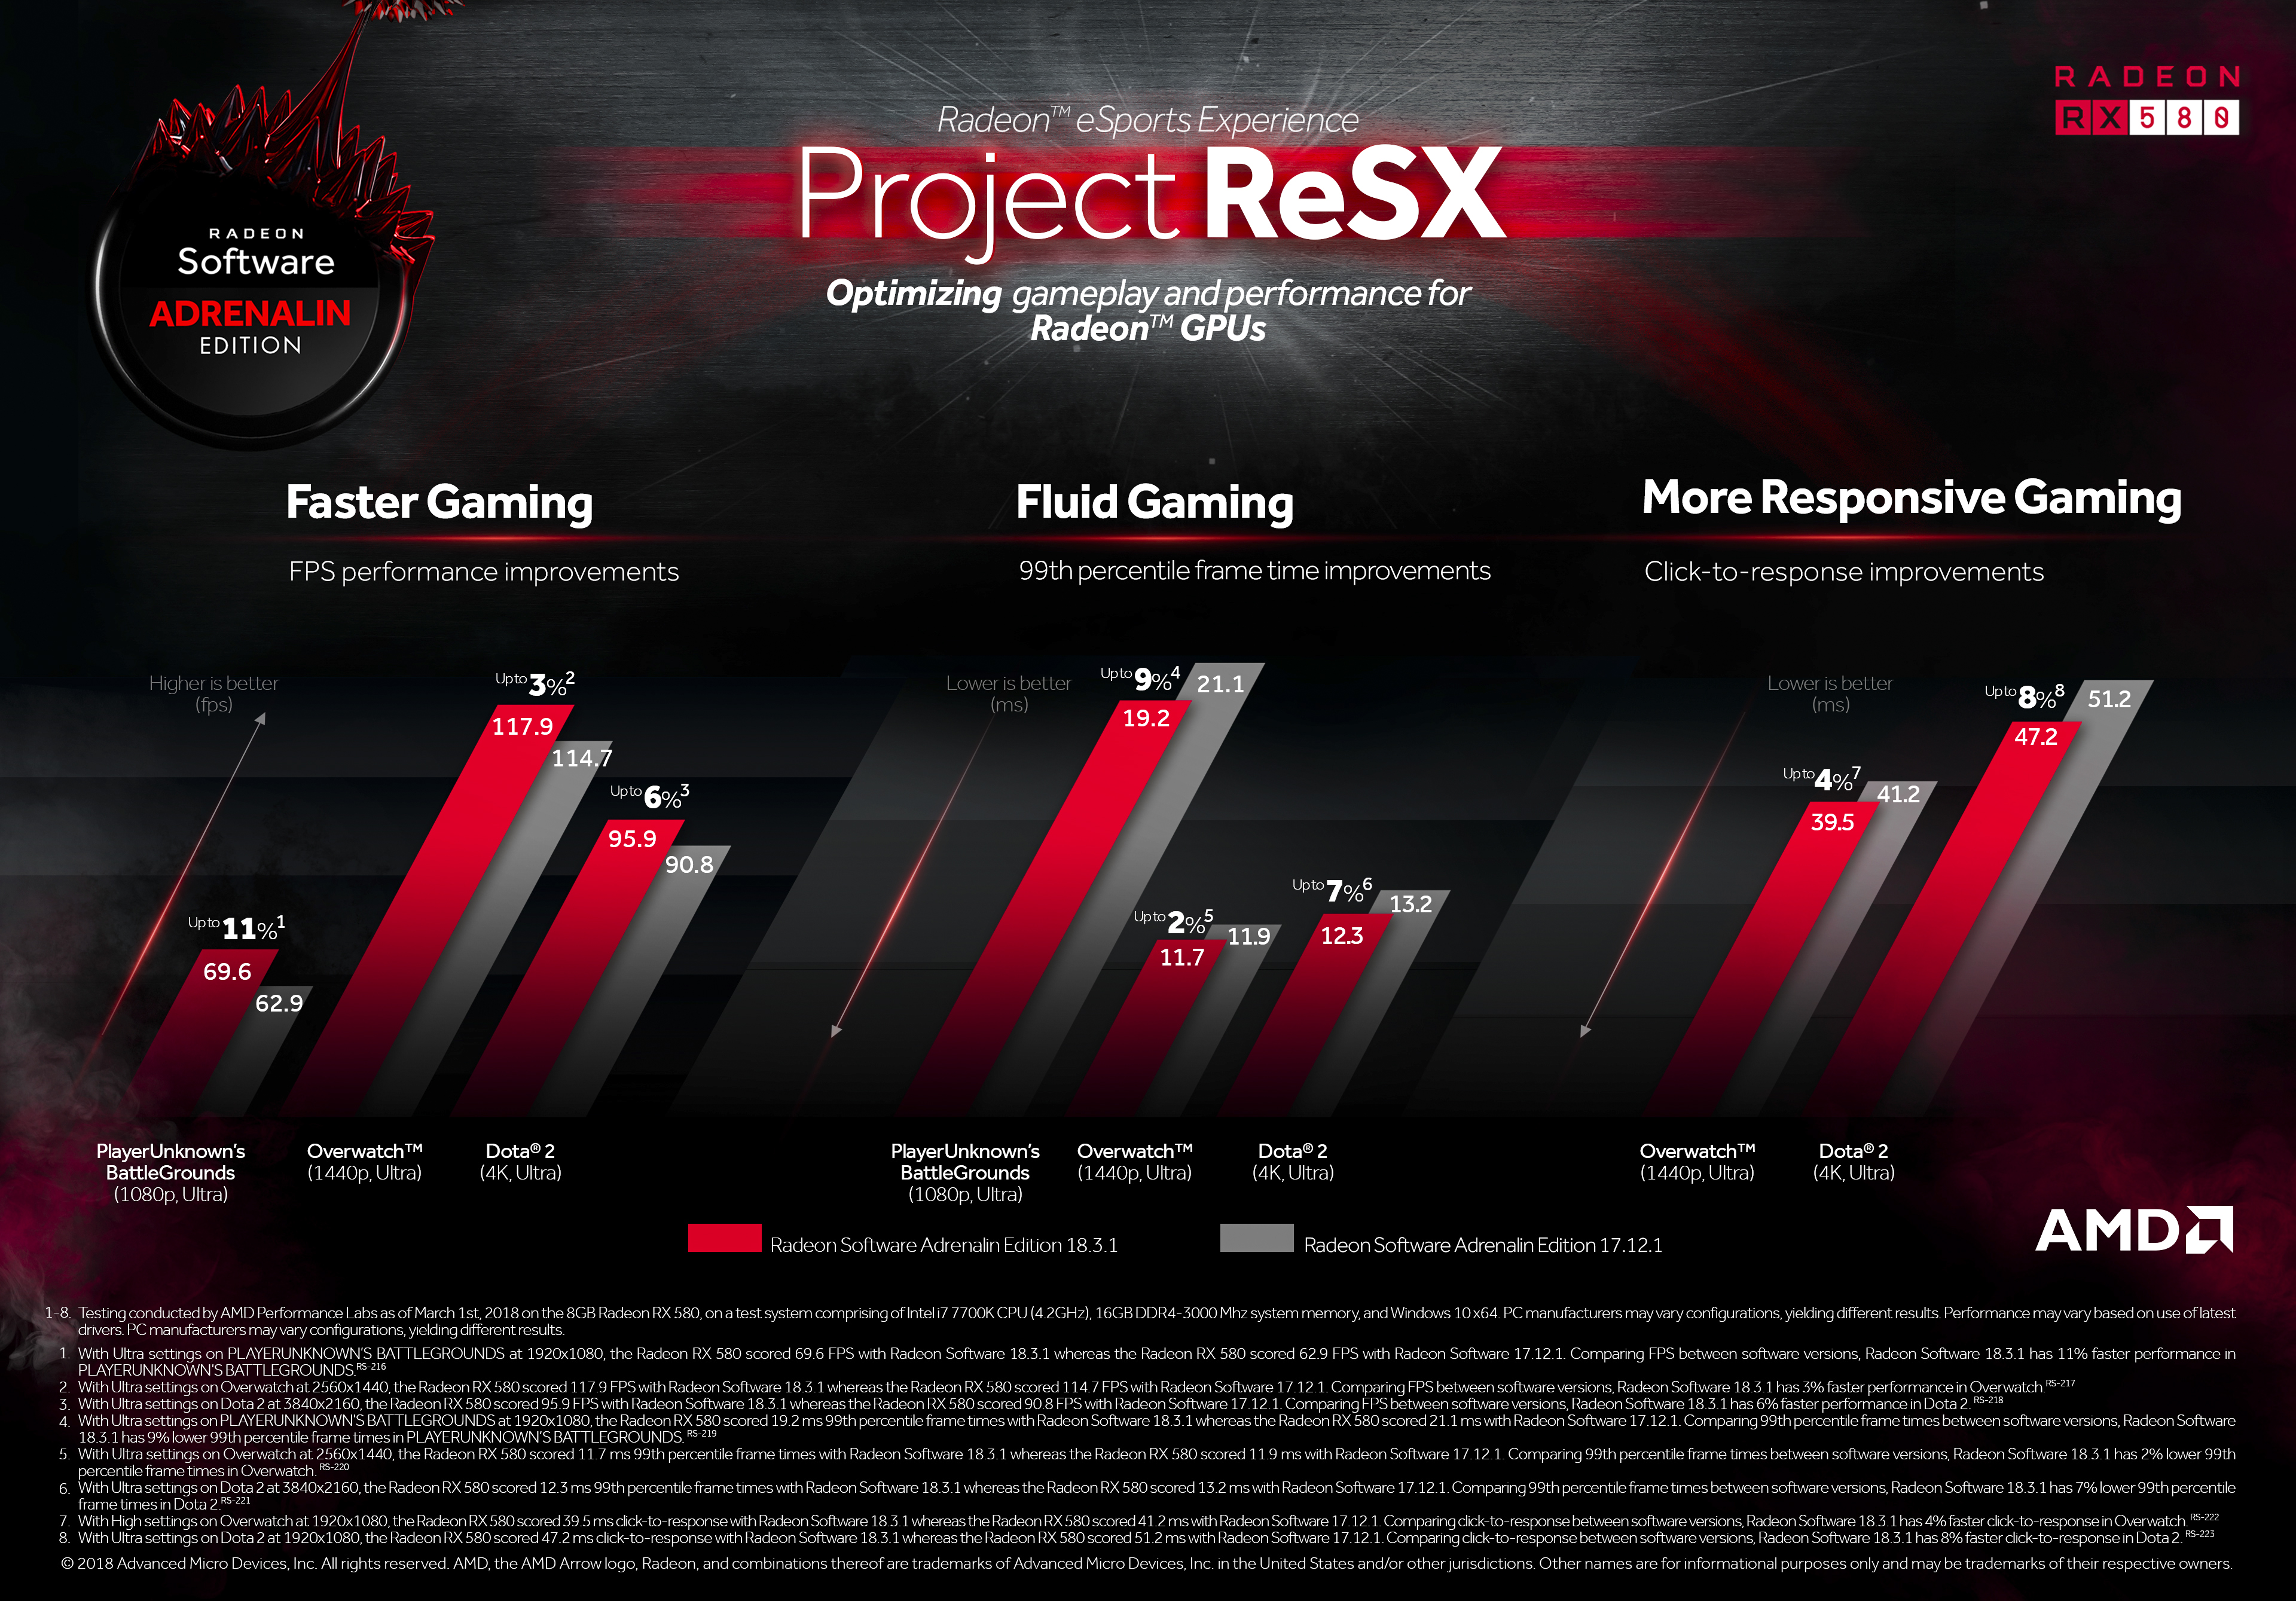 amd-Project-ReSX.jpg